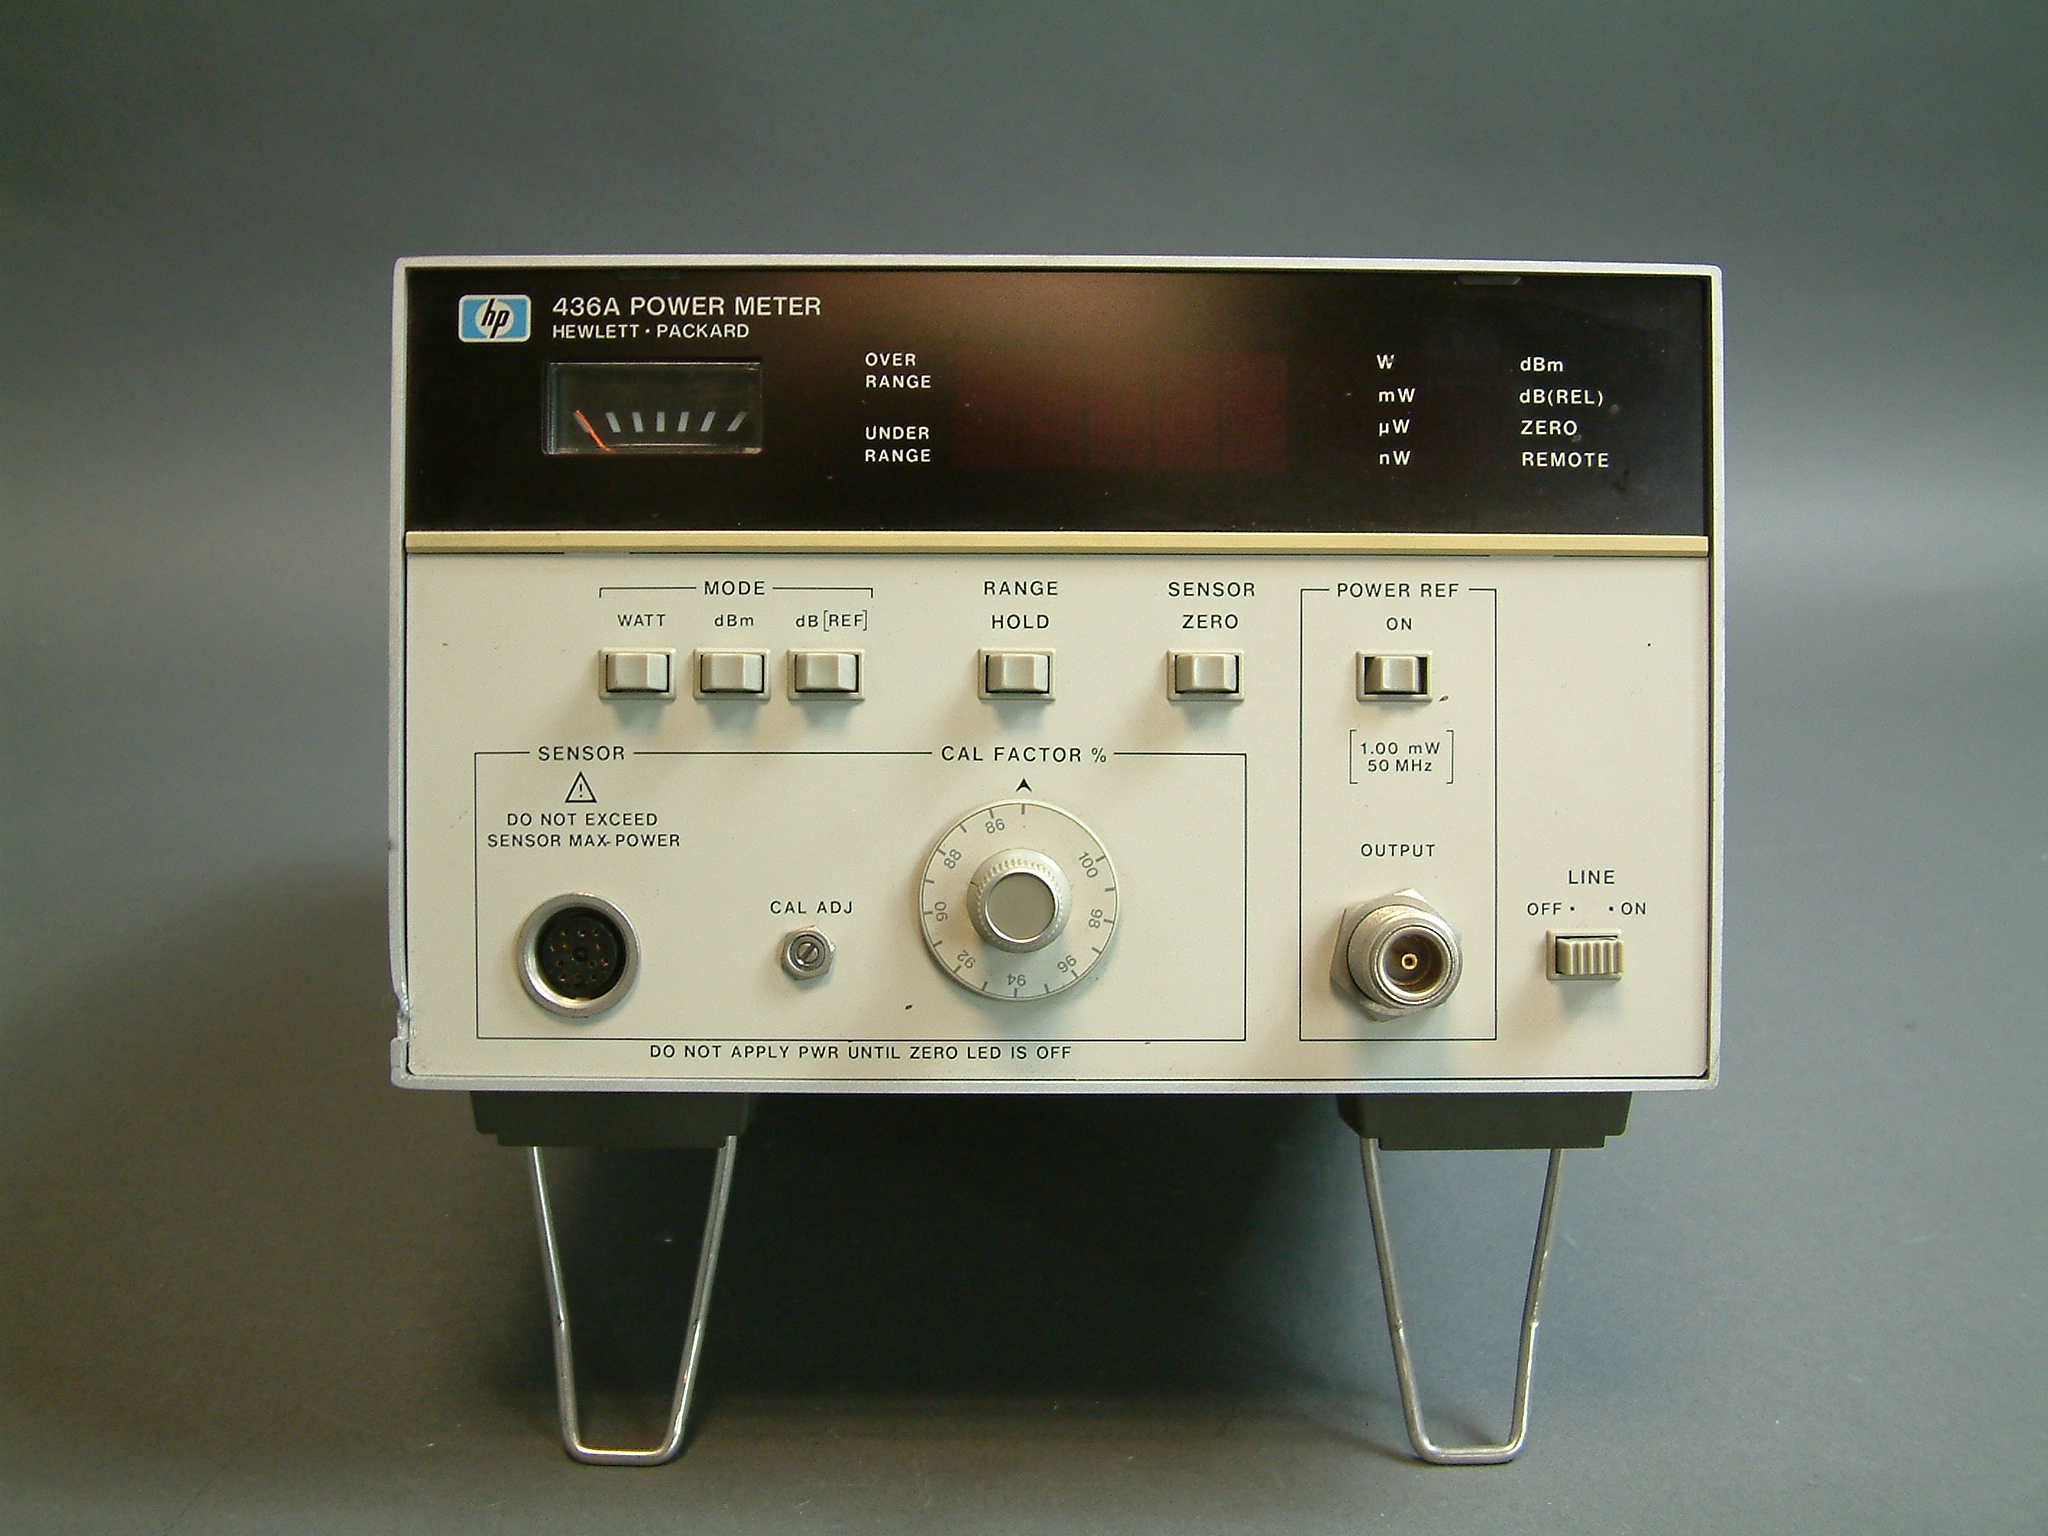 Tennessee Sales Tax Calculator >> Clean Good Used HP 436A Power Meter Option 022 to 18 gHz ...